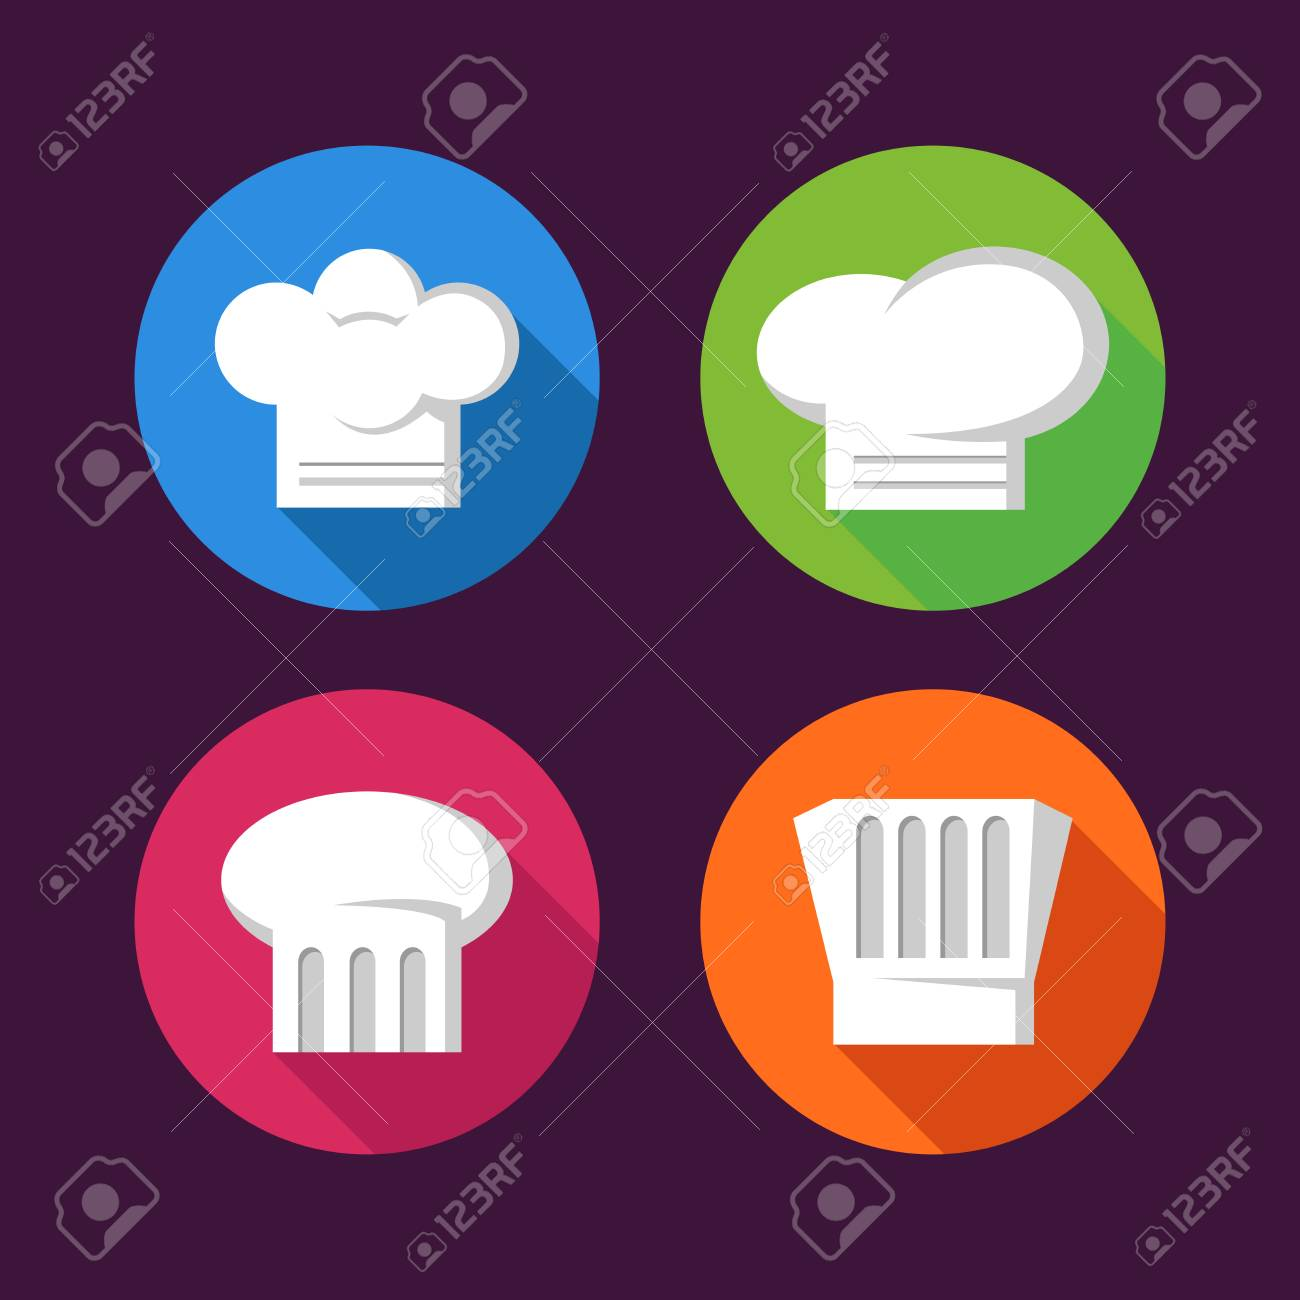 cba37070 Collection Of Colorful Chef's Hat Flat Icons Royalty Free Cliparts ...